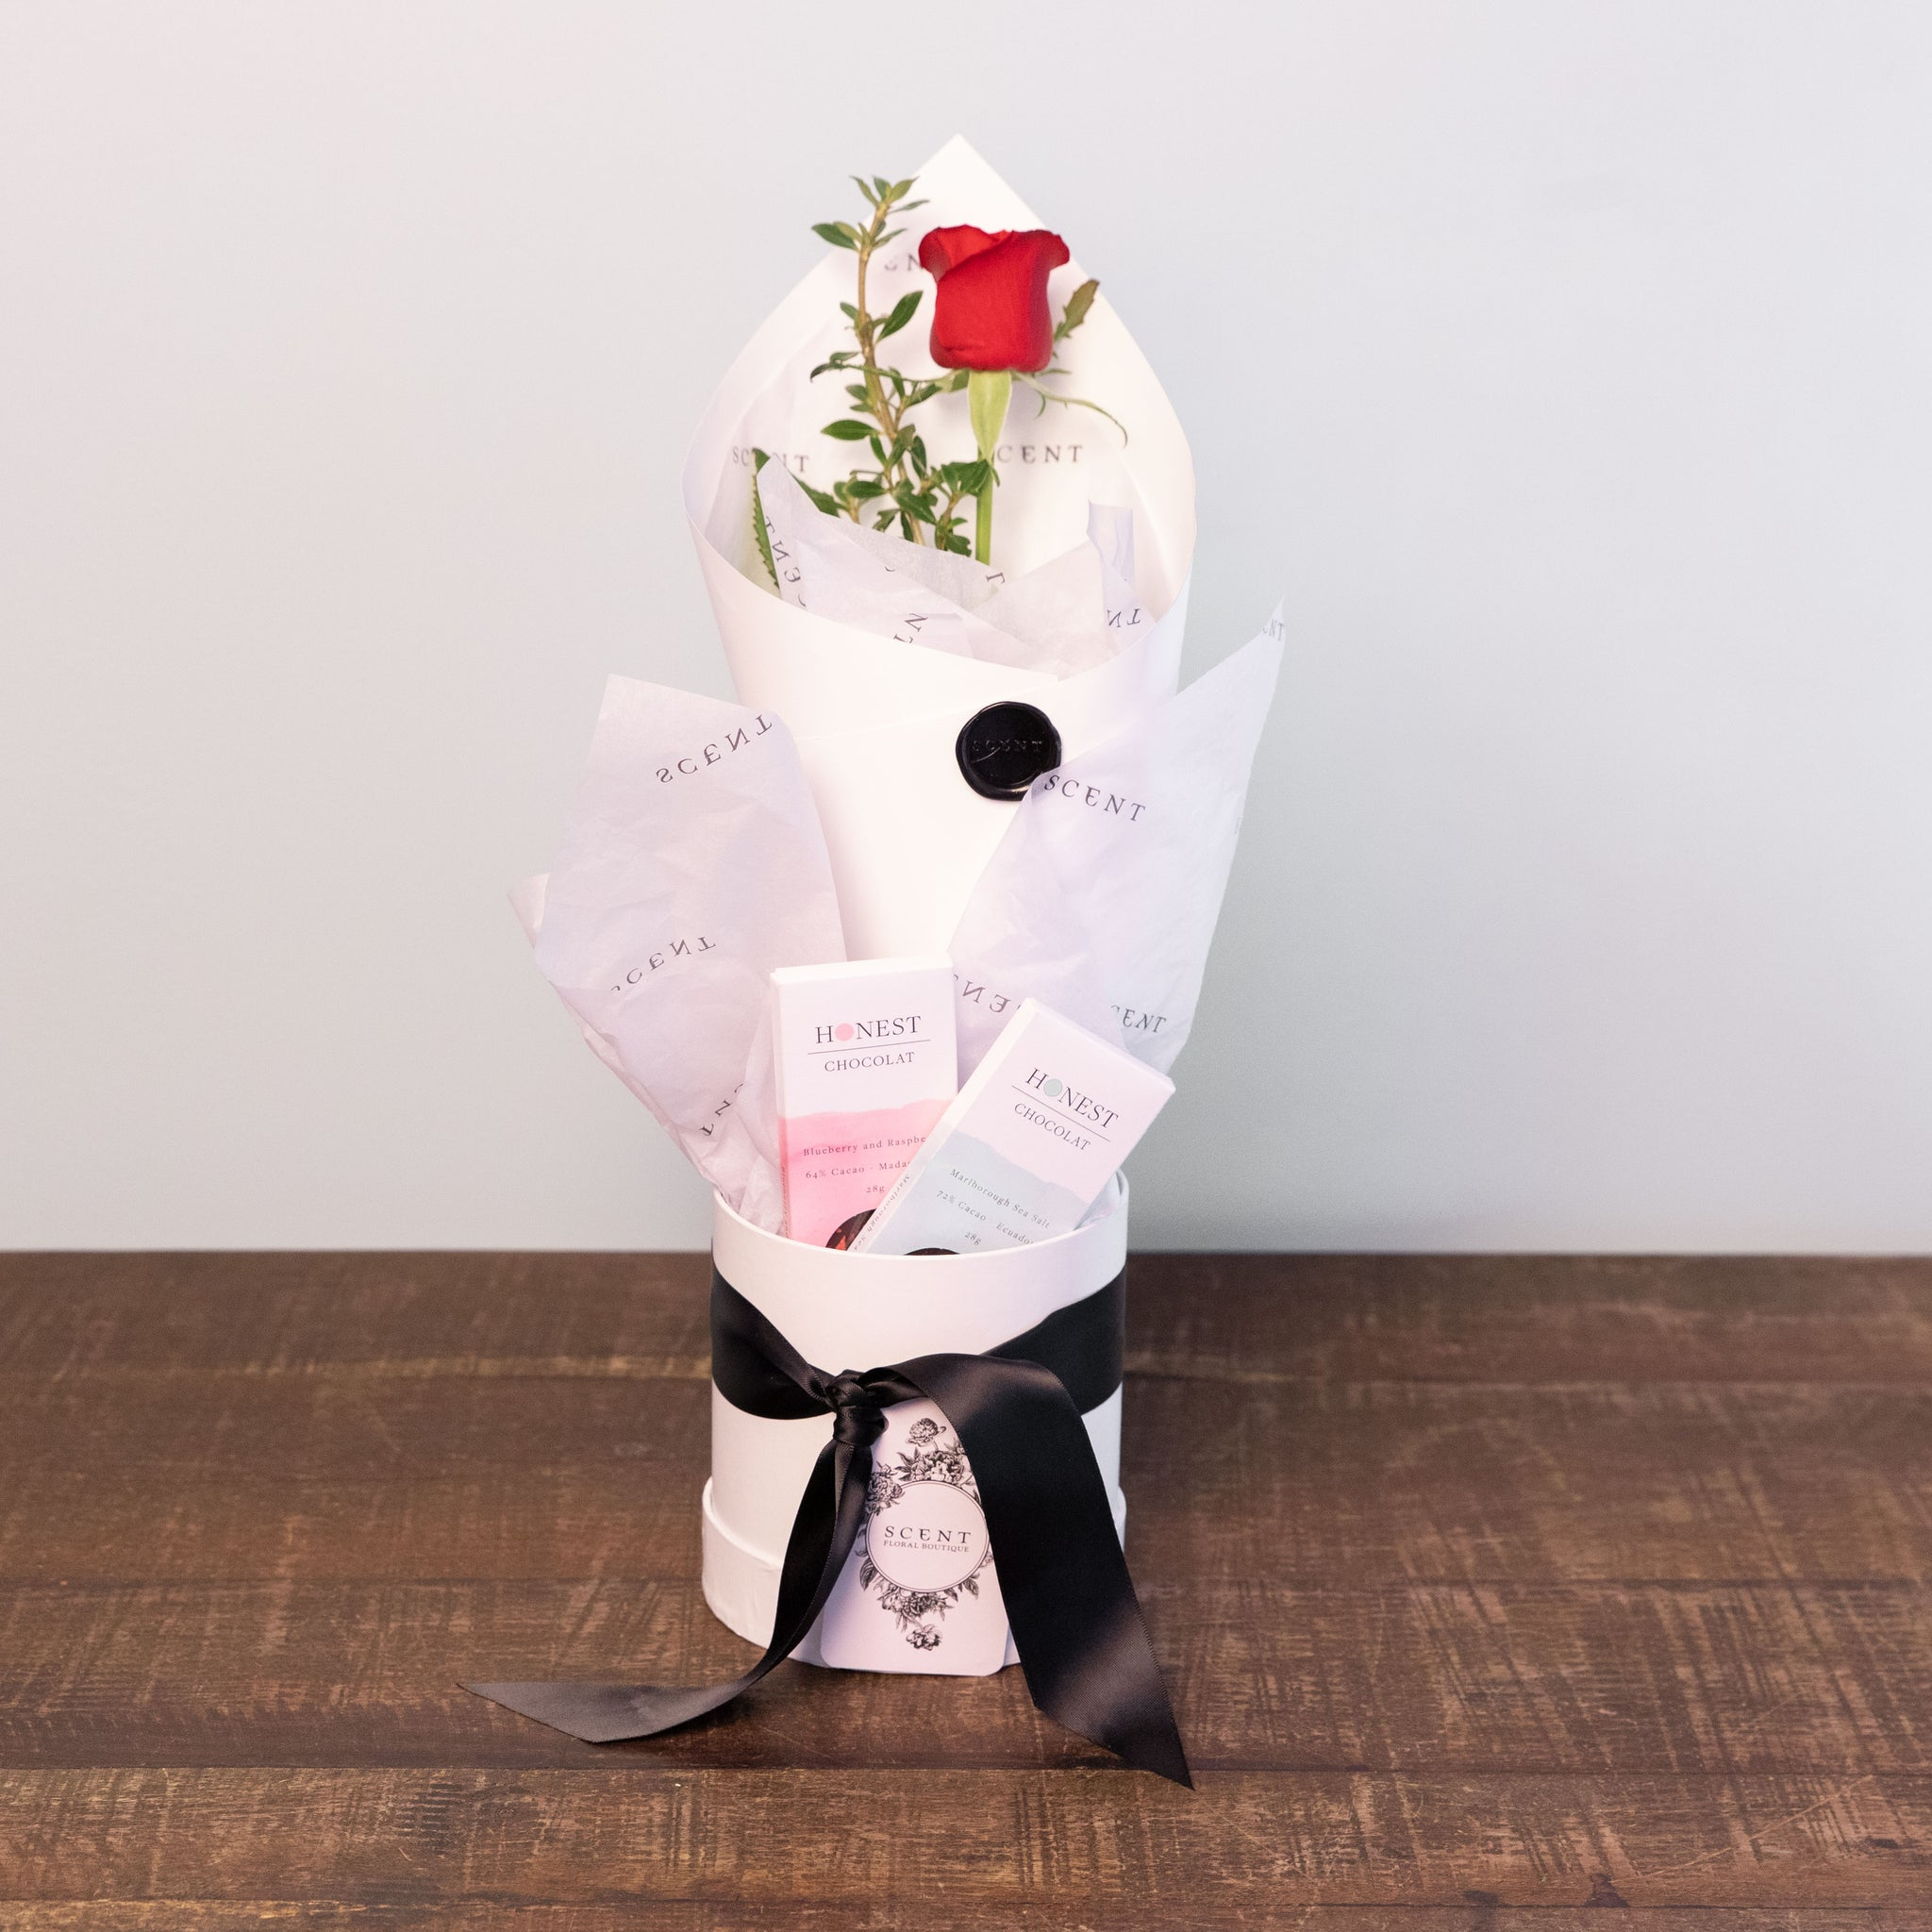 A beautifully wrapped single rose and two mini Honest chocolate bars in a hatbox.